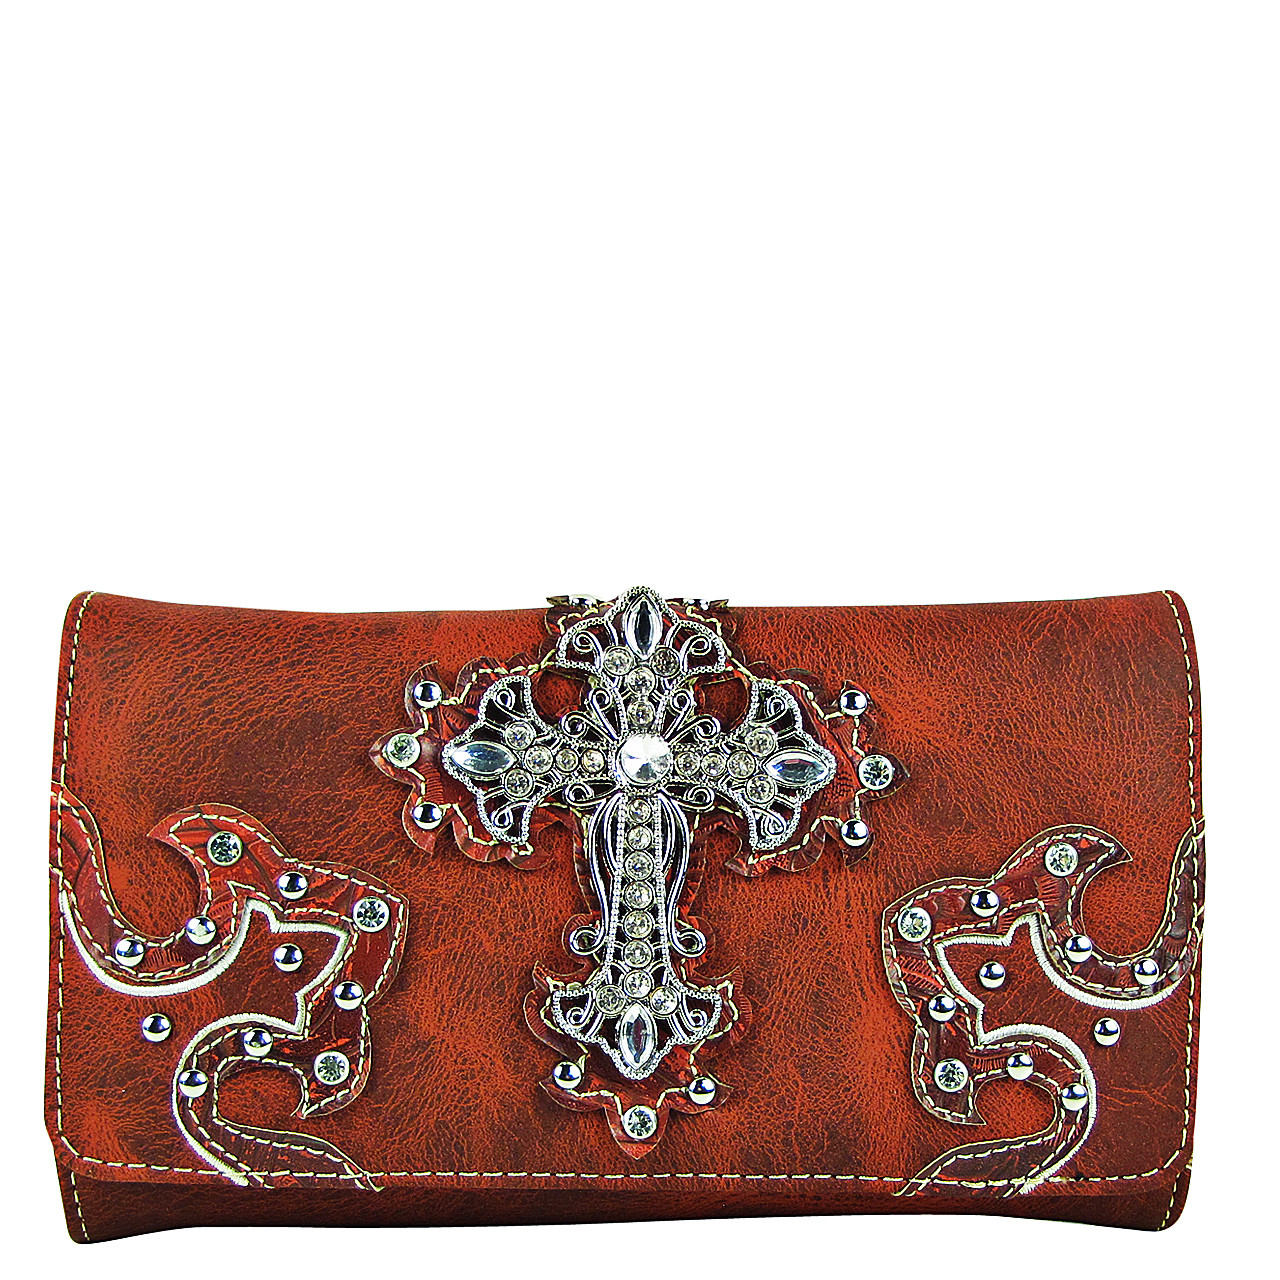 RED RHINESTONE CROSS STITCHING LEATHERETTE LOOK CLUTCH TRIFOLD WALLET CW1-0478RED